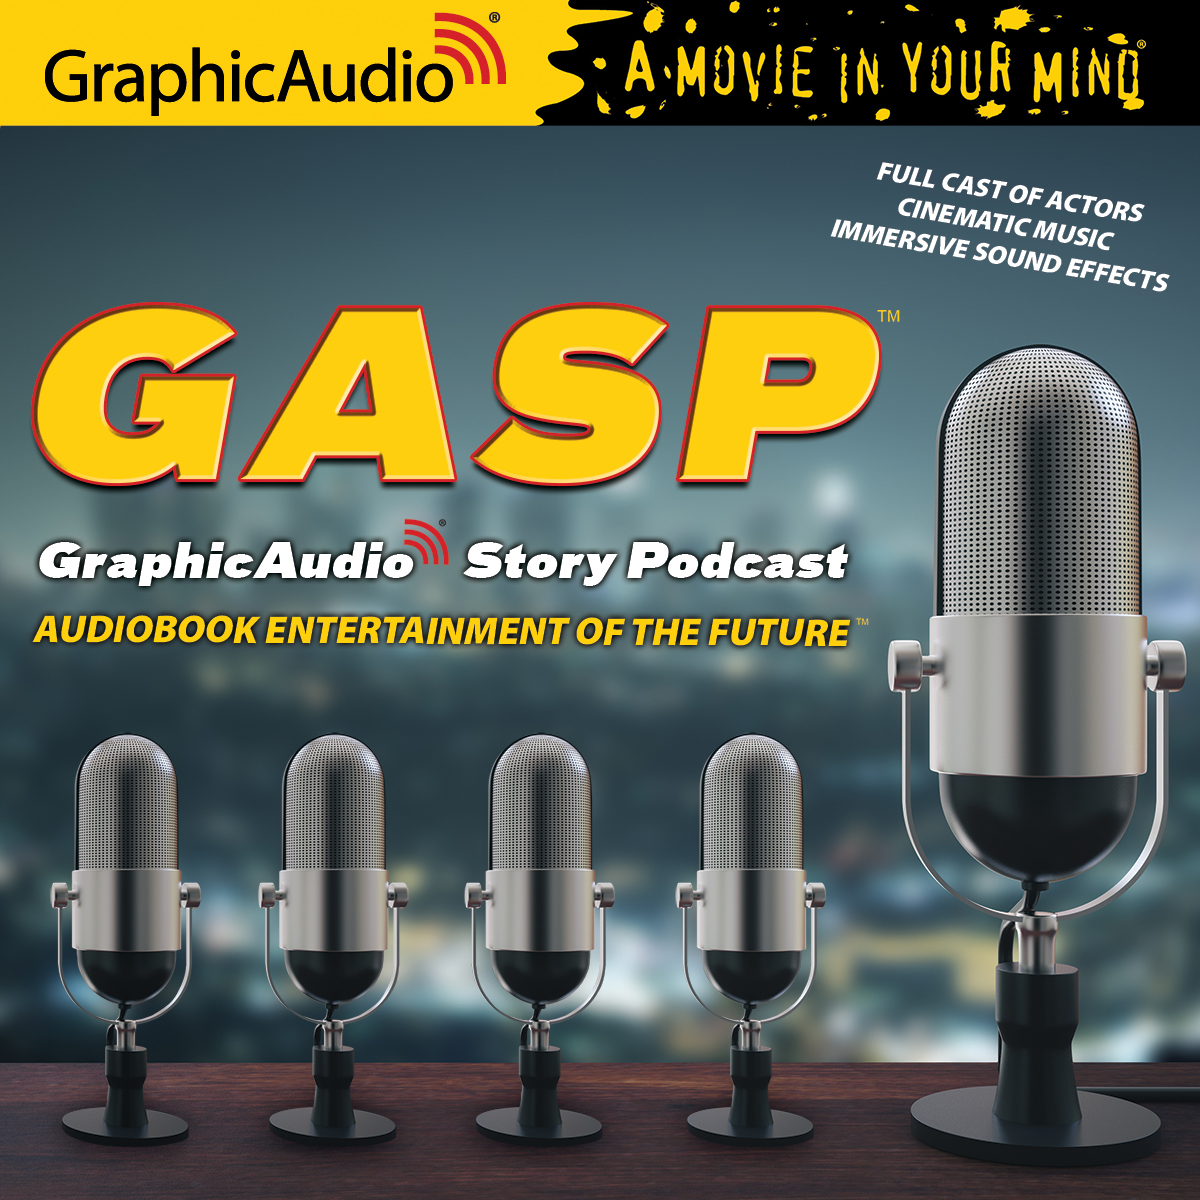 G.A.S.P. - GraphicAudio Story Podcast